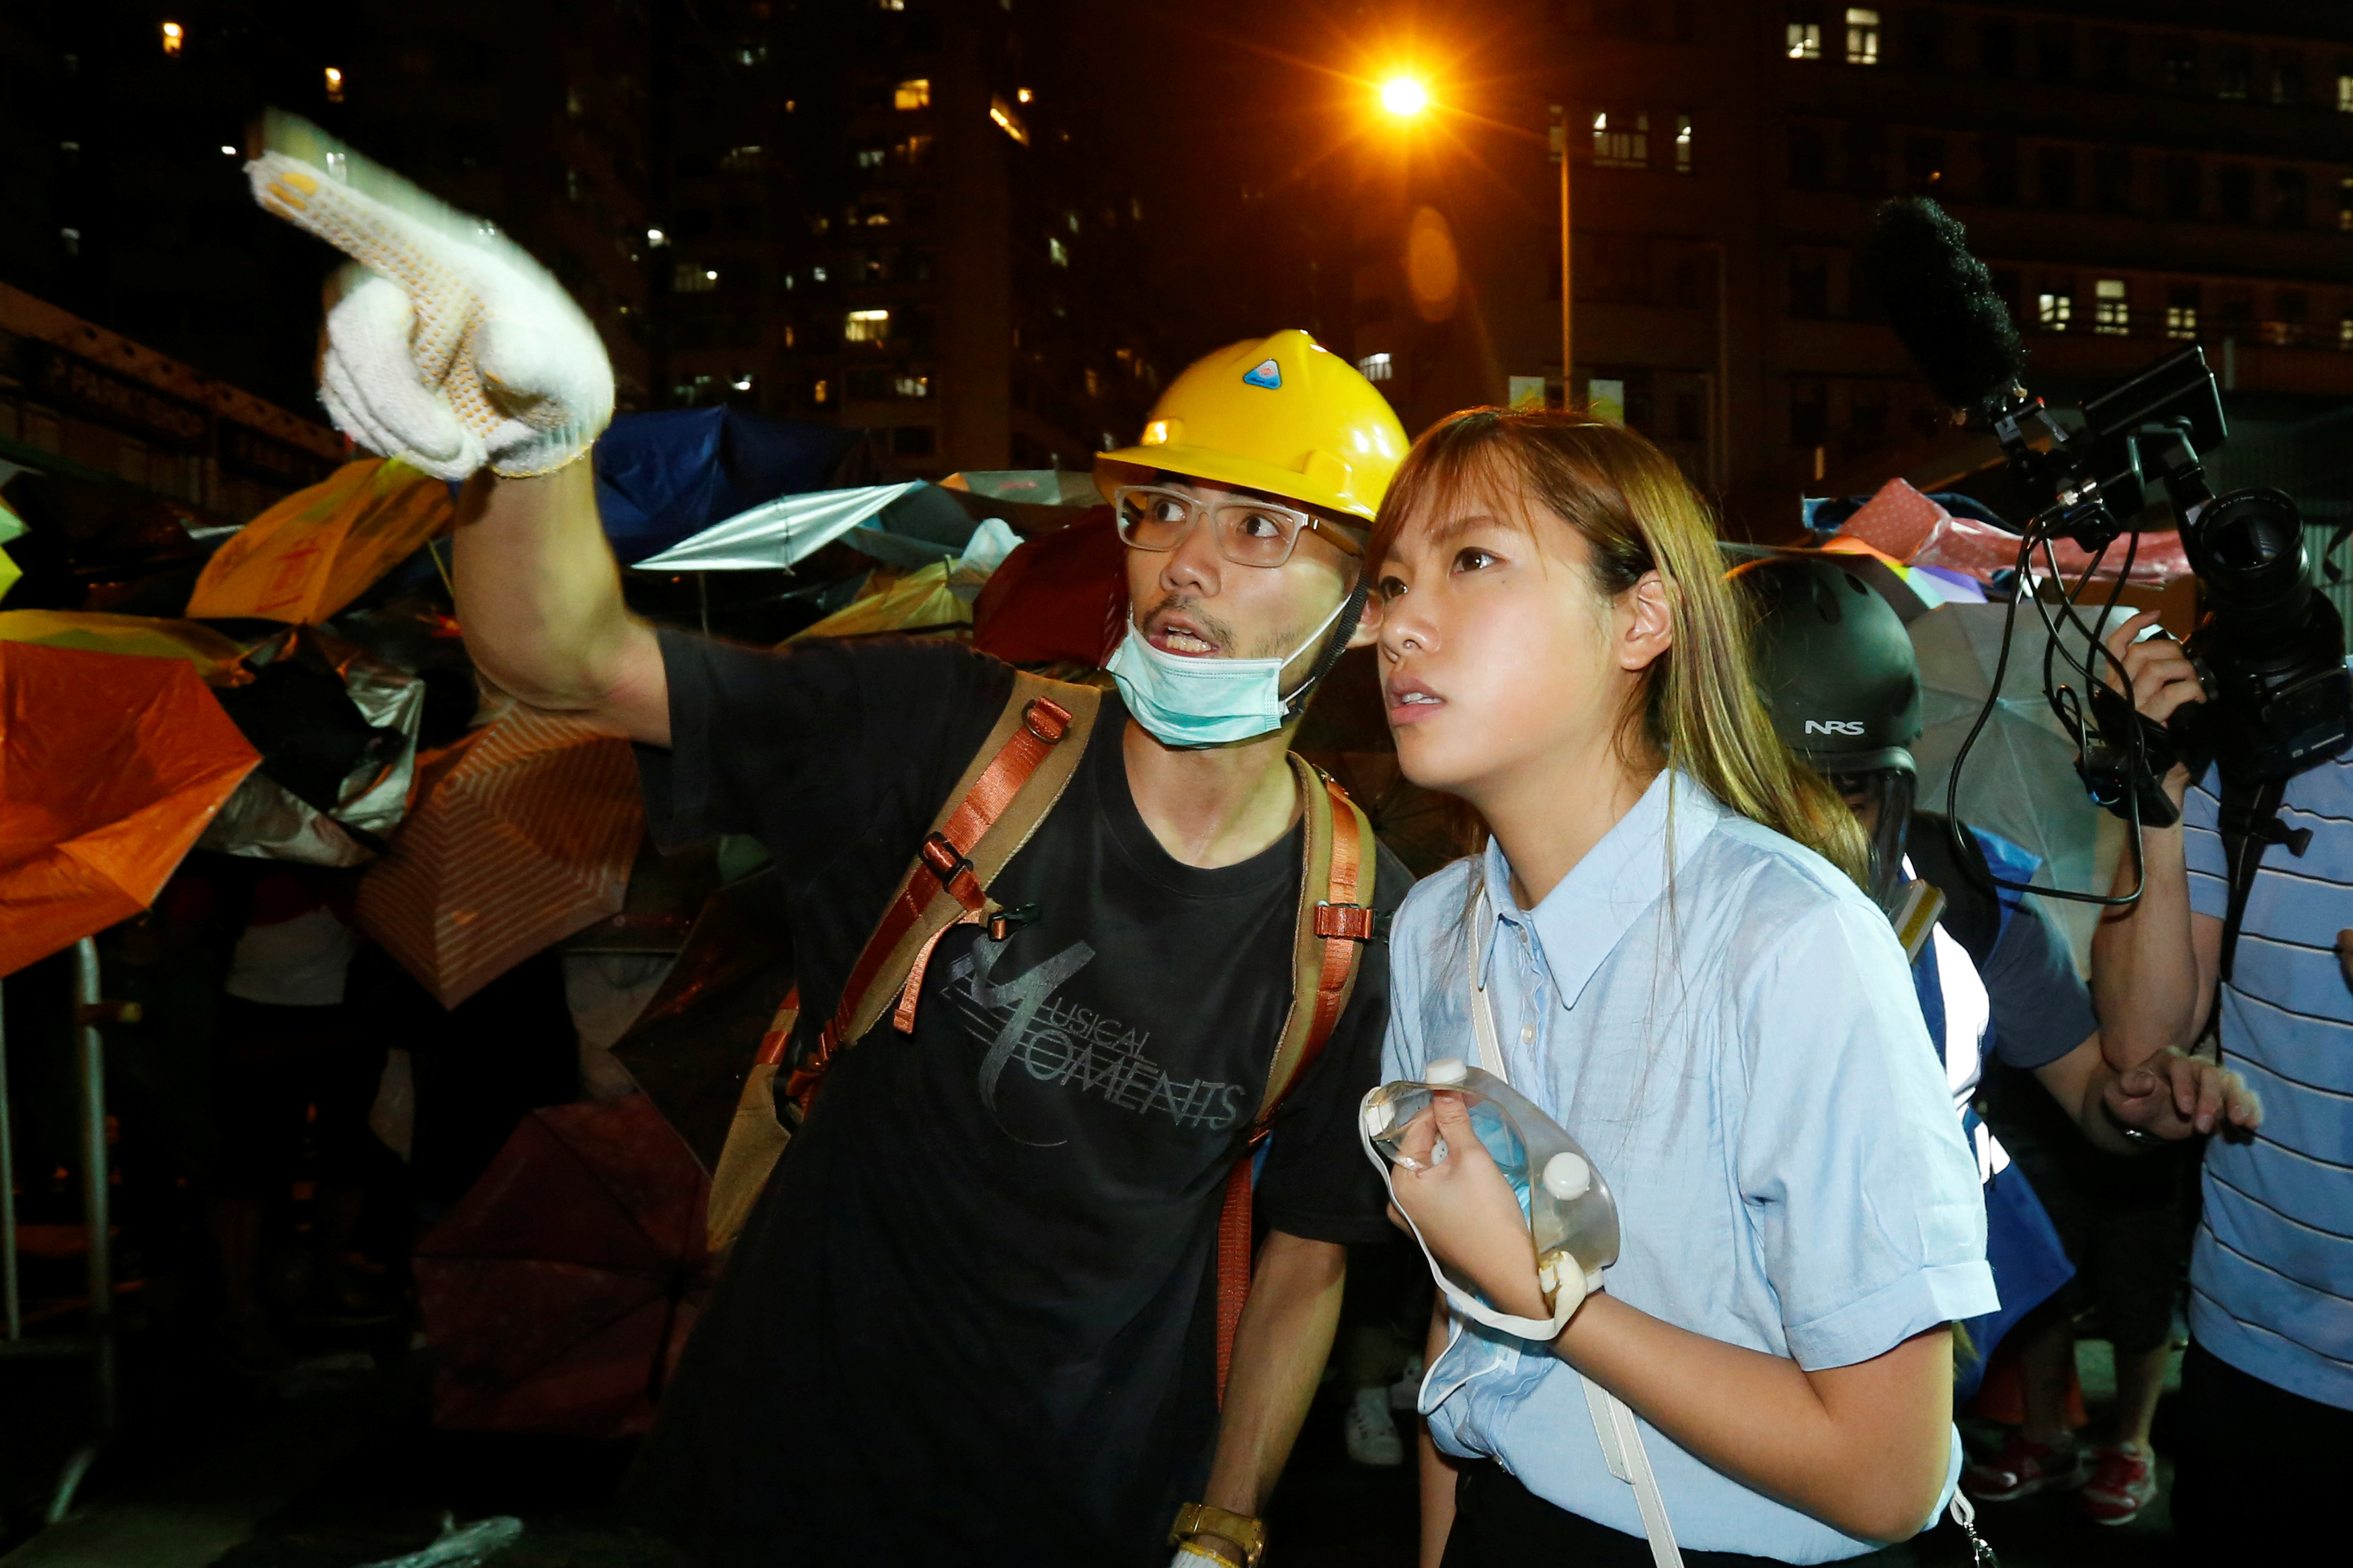 Pro-independence legislator-elect Yau Wai-ching (R) talks with a protester during a confrontation with the police outside China Liaison Office in Hong Kong, China November 6, 2016. REUTERS/Bobby Yip - RTX2S628